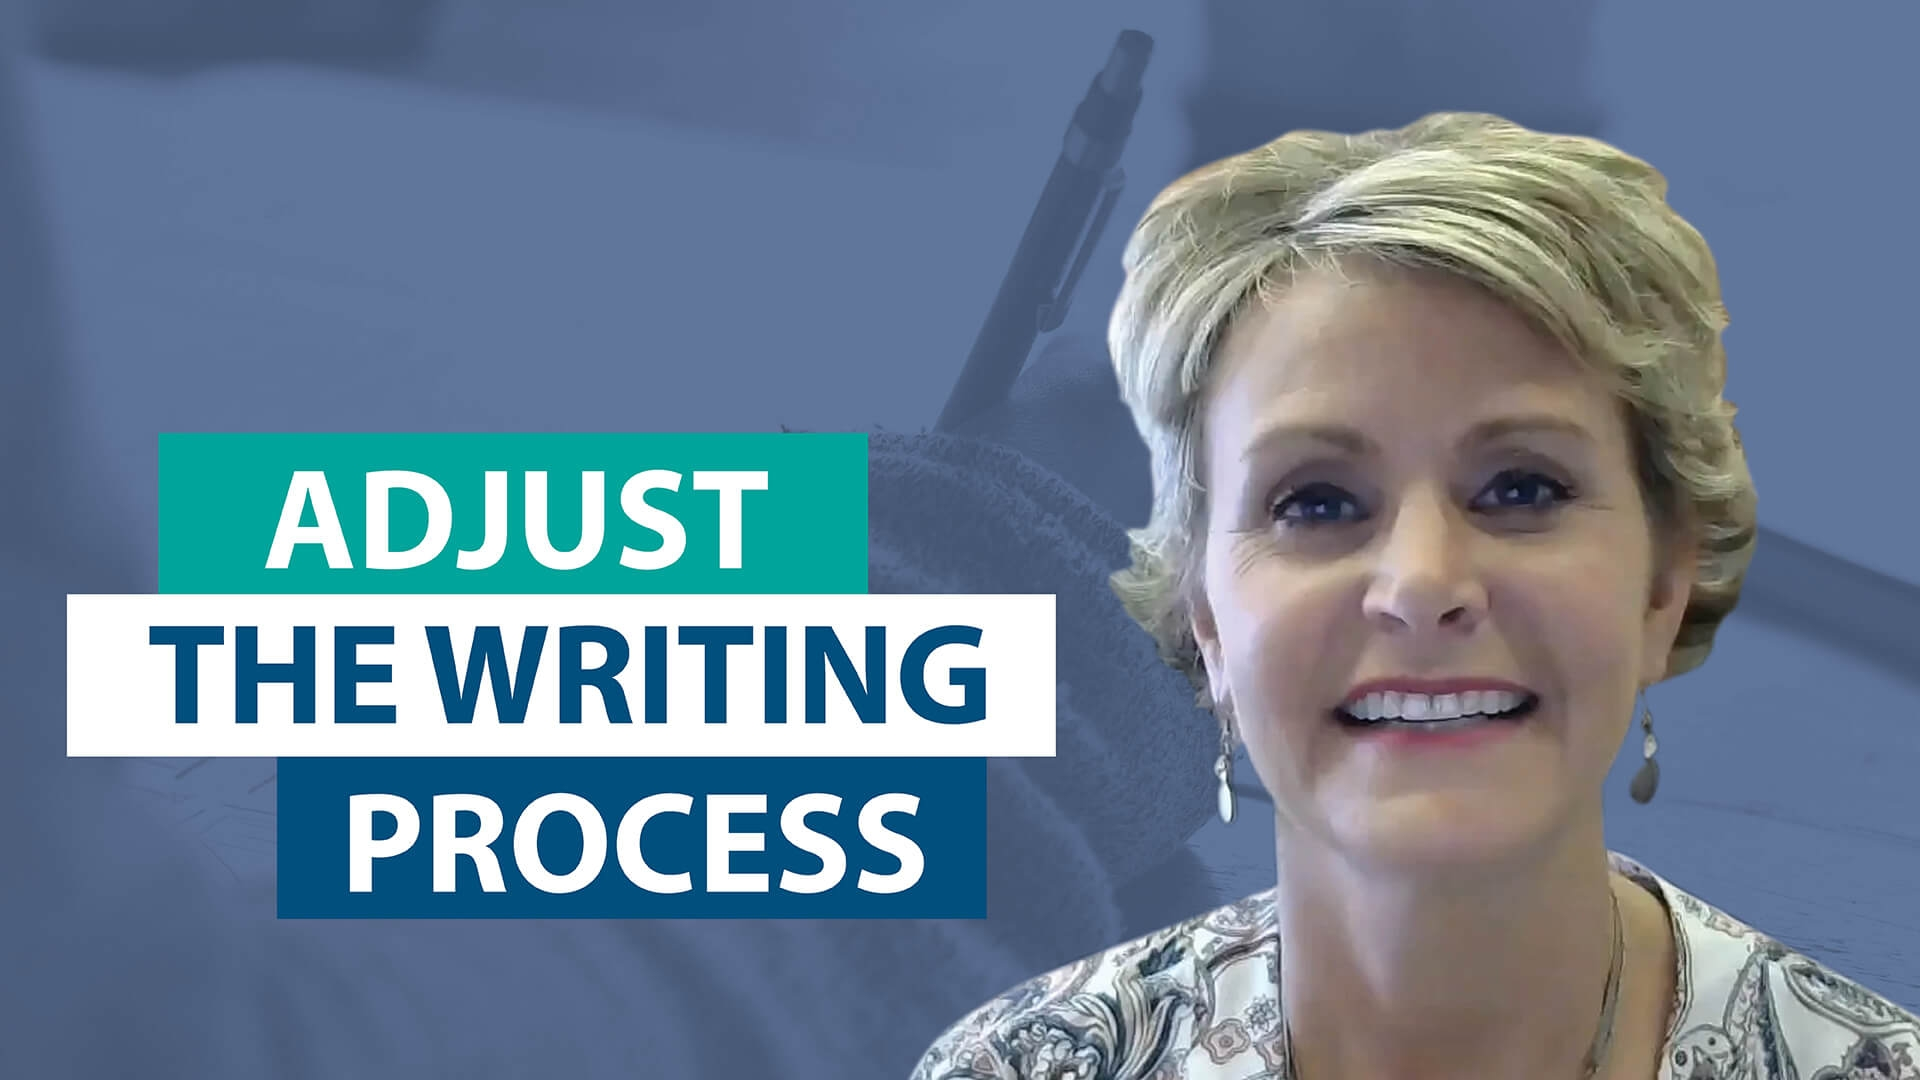 Ask Smekens: How do you adjust the writing process for 2 weeks versus 2 days?